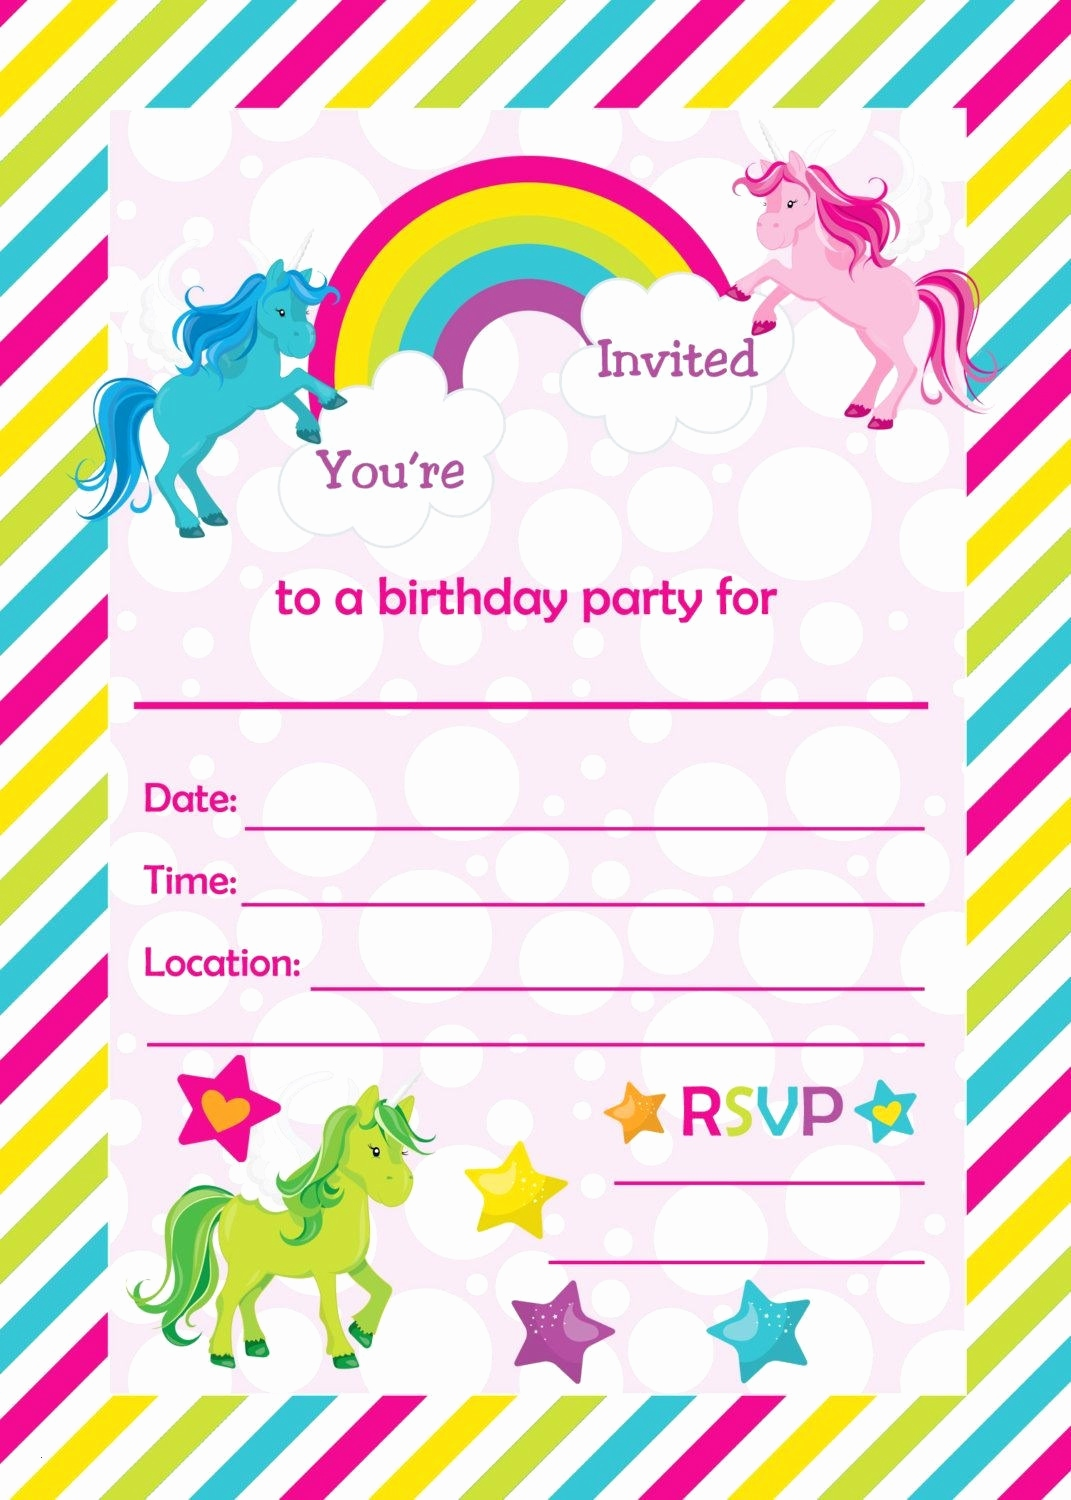 Einladungskarte Geburtstag Vorlage Inspirierend √ Birthday Party Invite Templates Unique Birthday Party Card